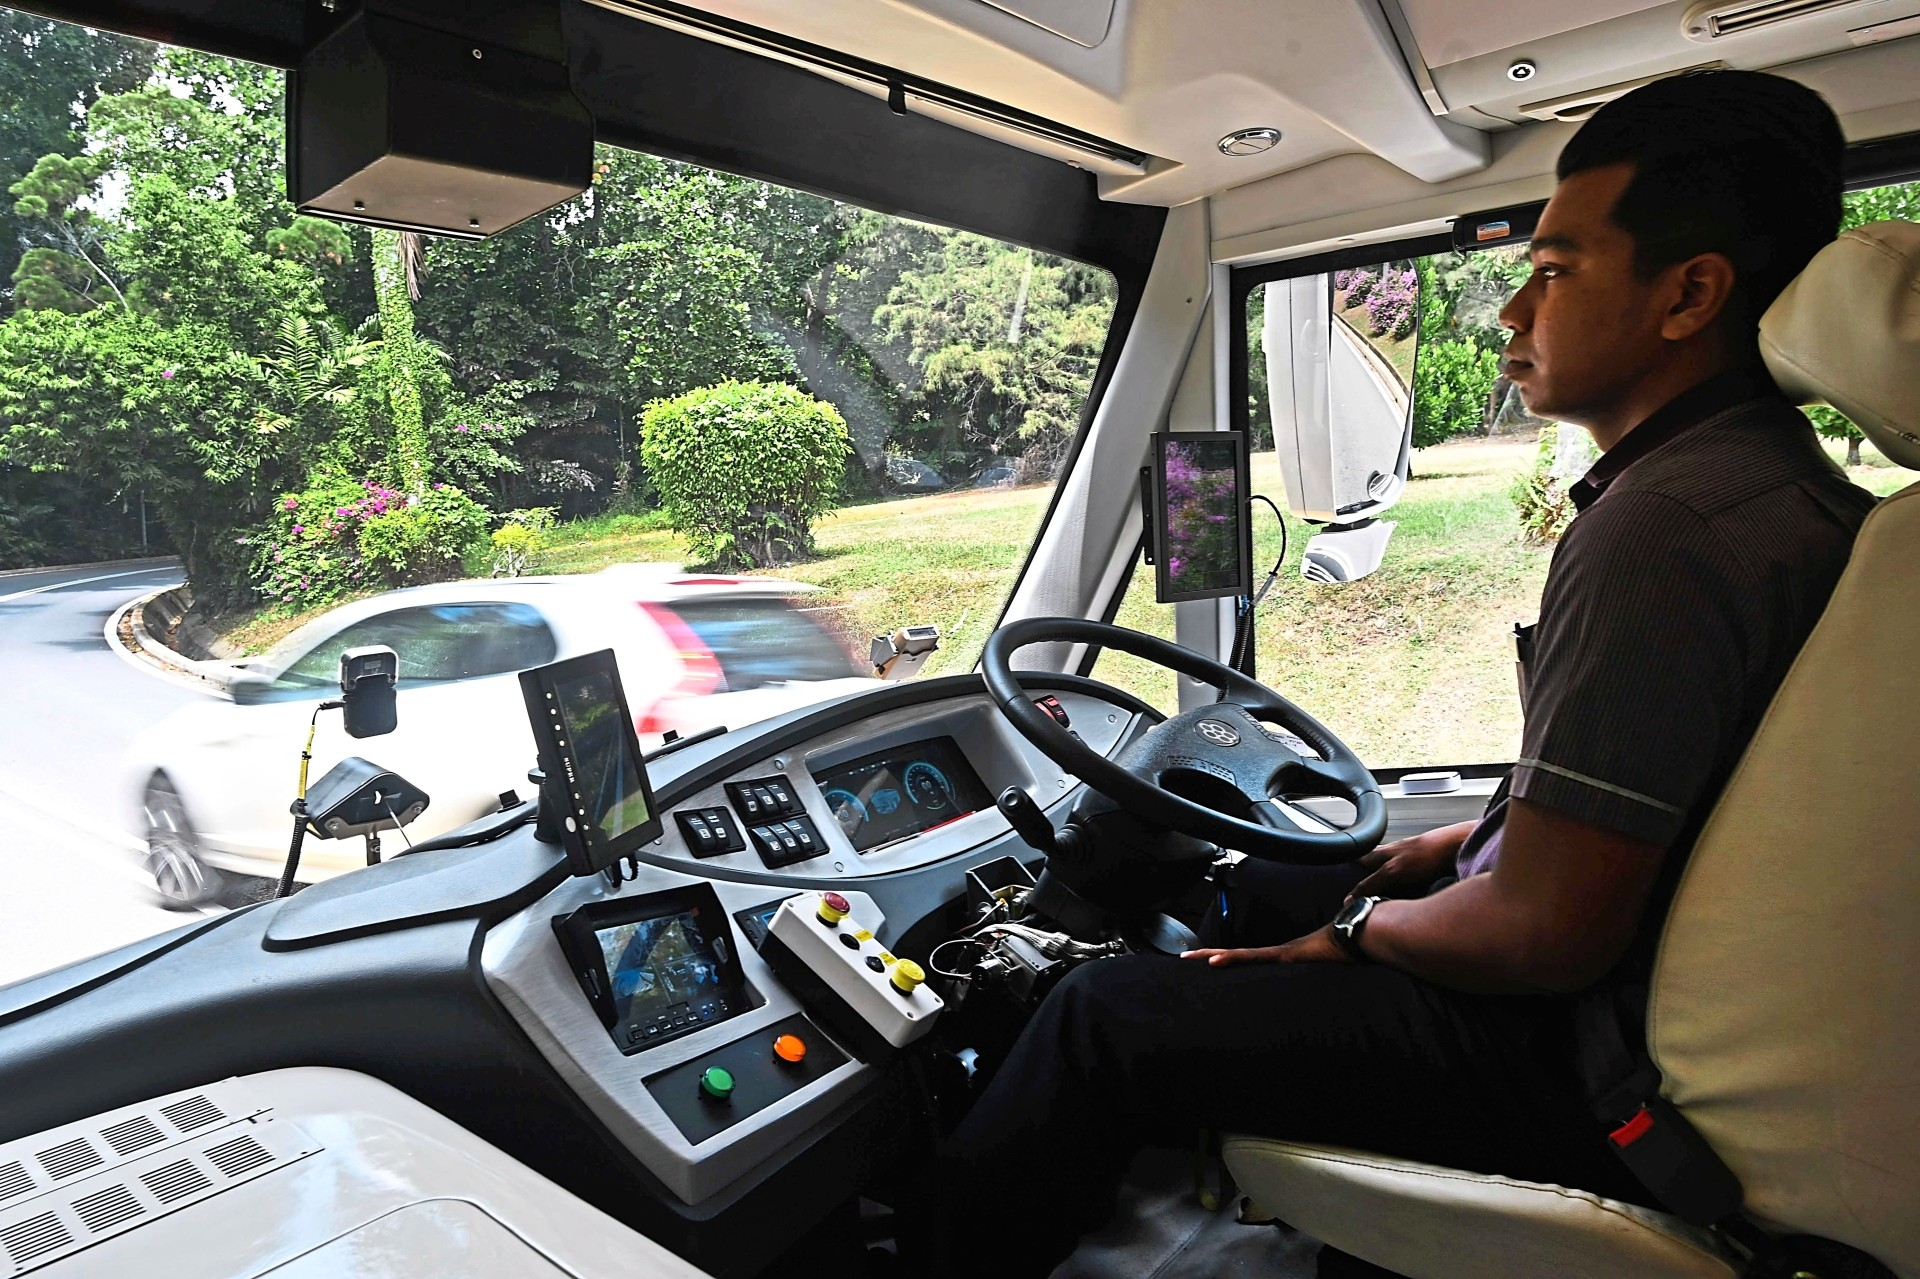 A safety driver sits in a moving on-demand autonomous shuttle bus at the official launch of a public trial in Sentosa island resort, Singapore. — AFP